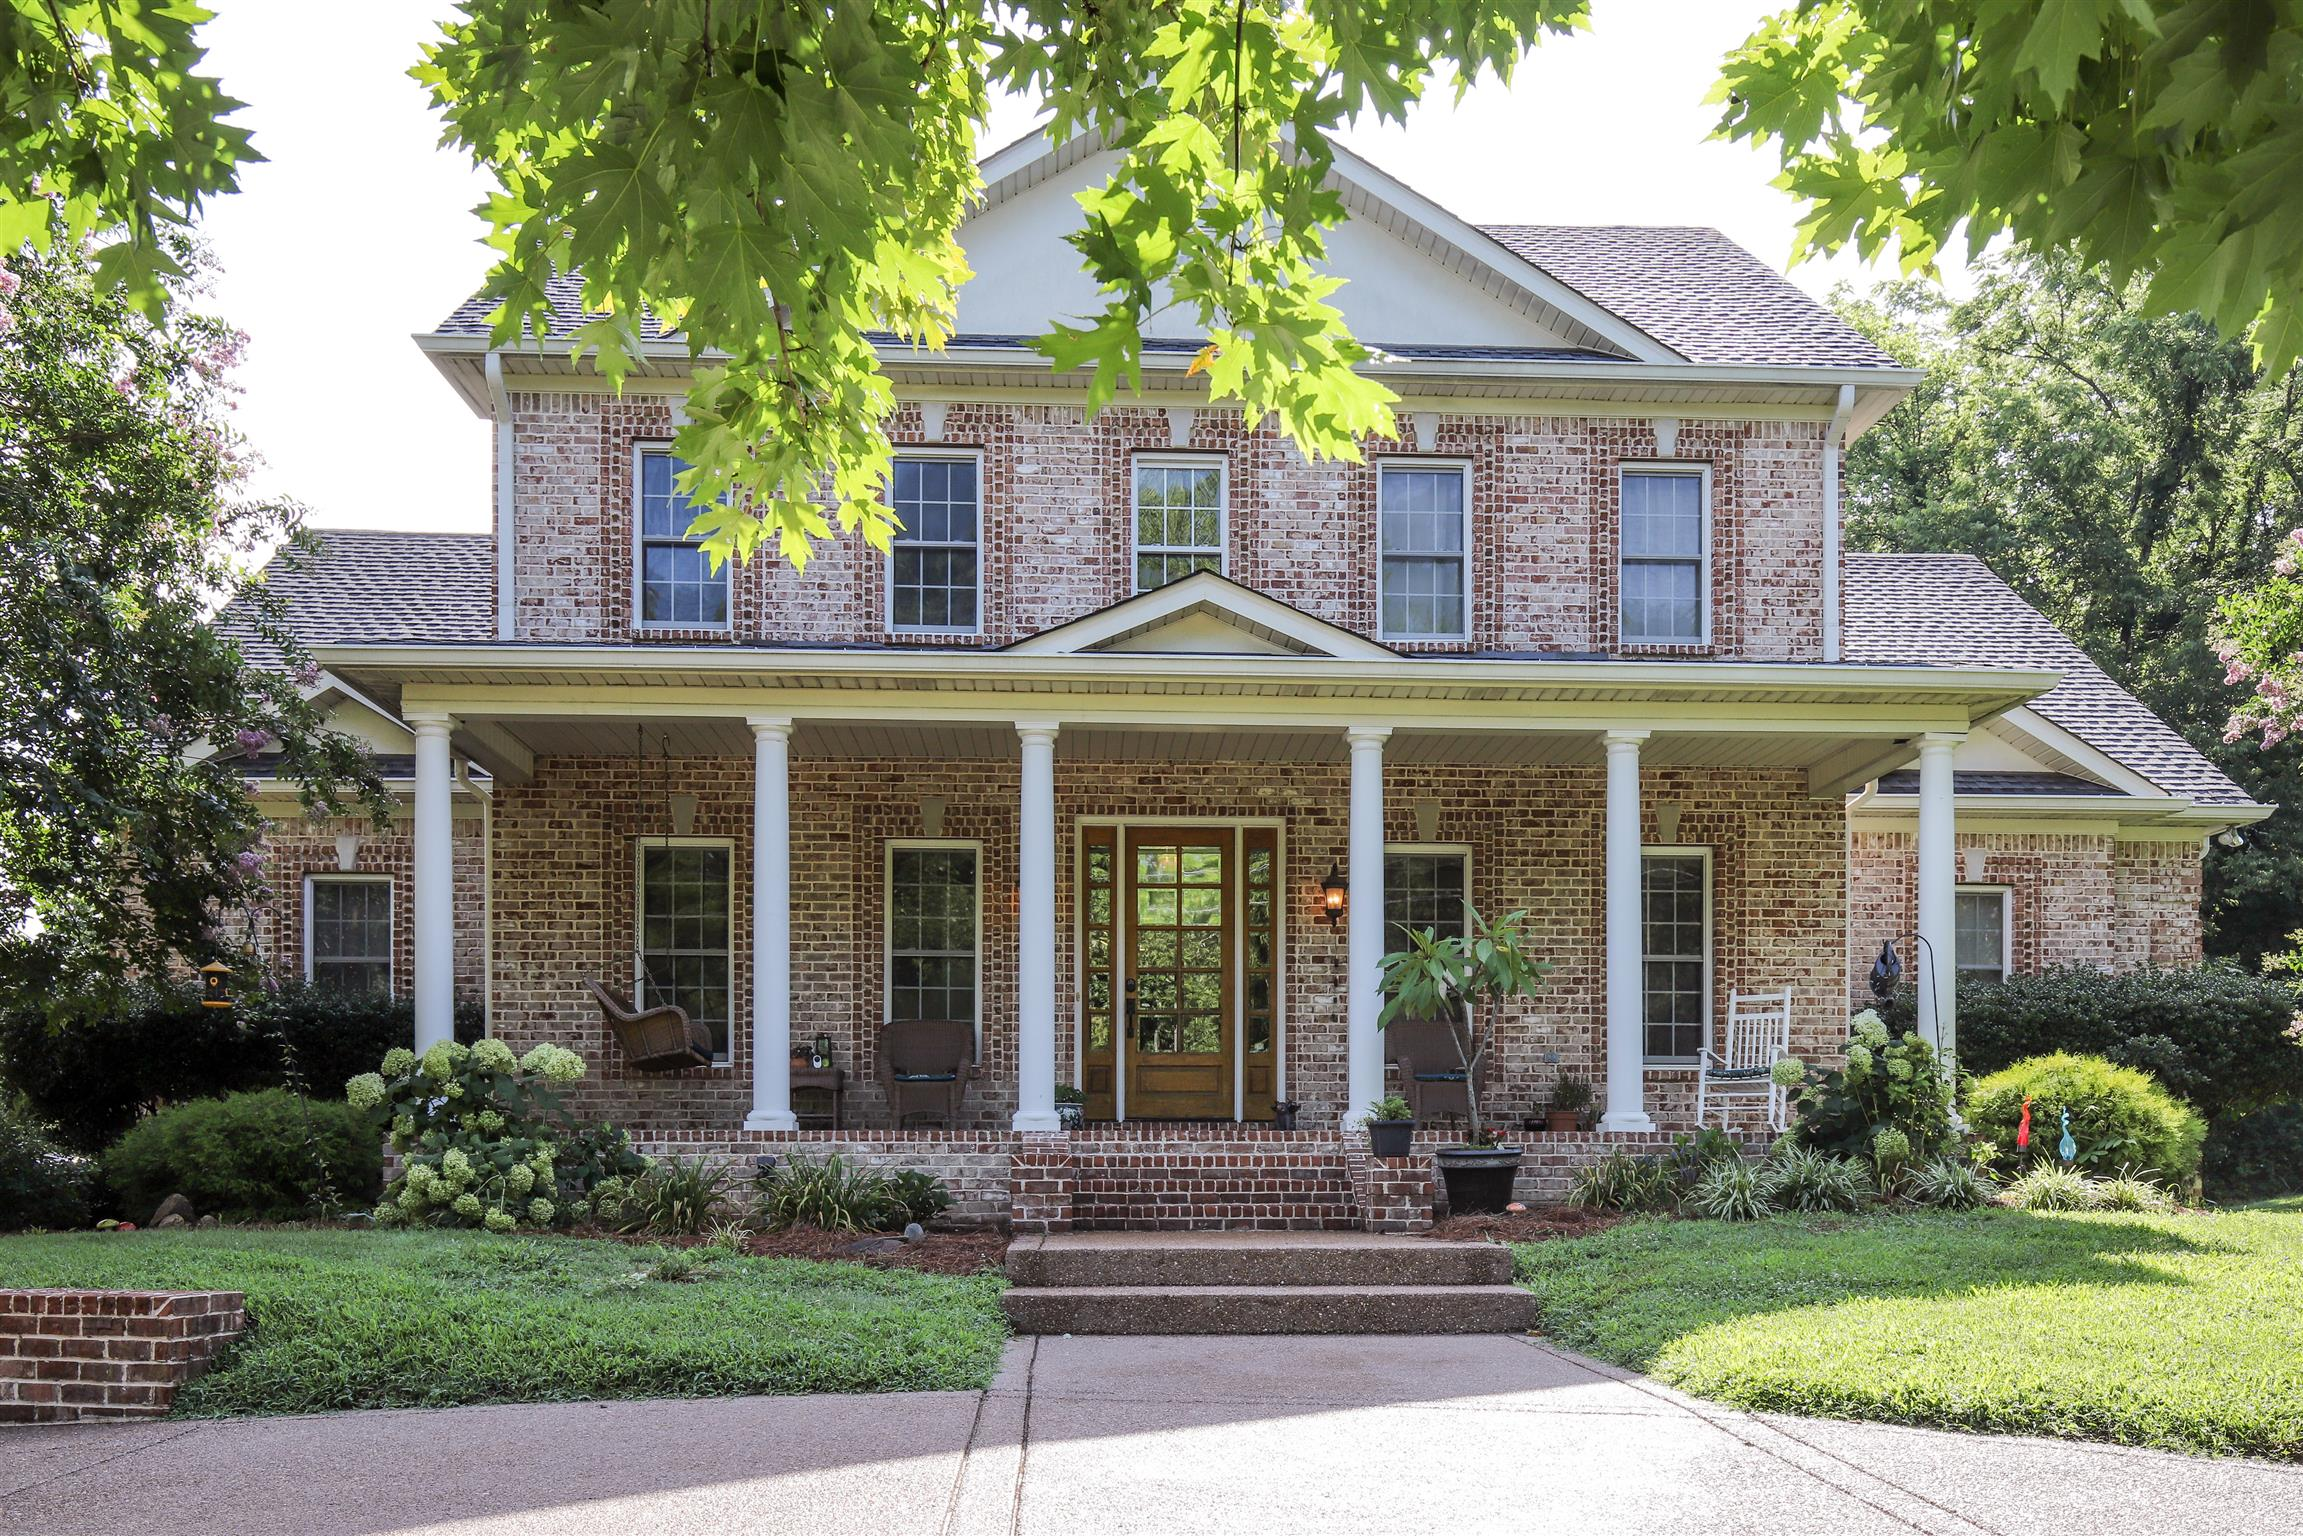 $700,000 - 4Br/5Ba -  for Sale in Hickory Isles 1, Mount Juliet